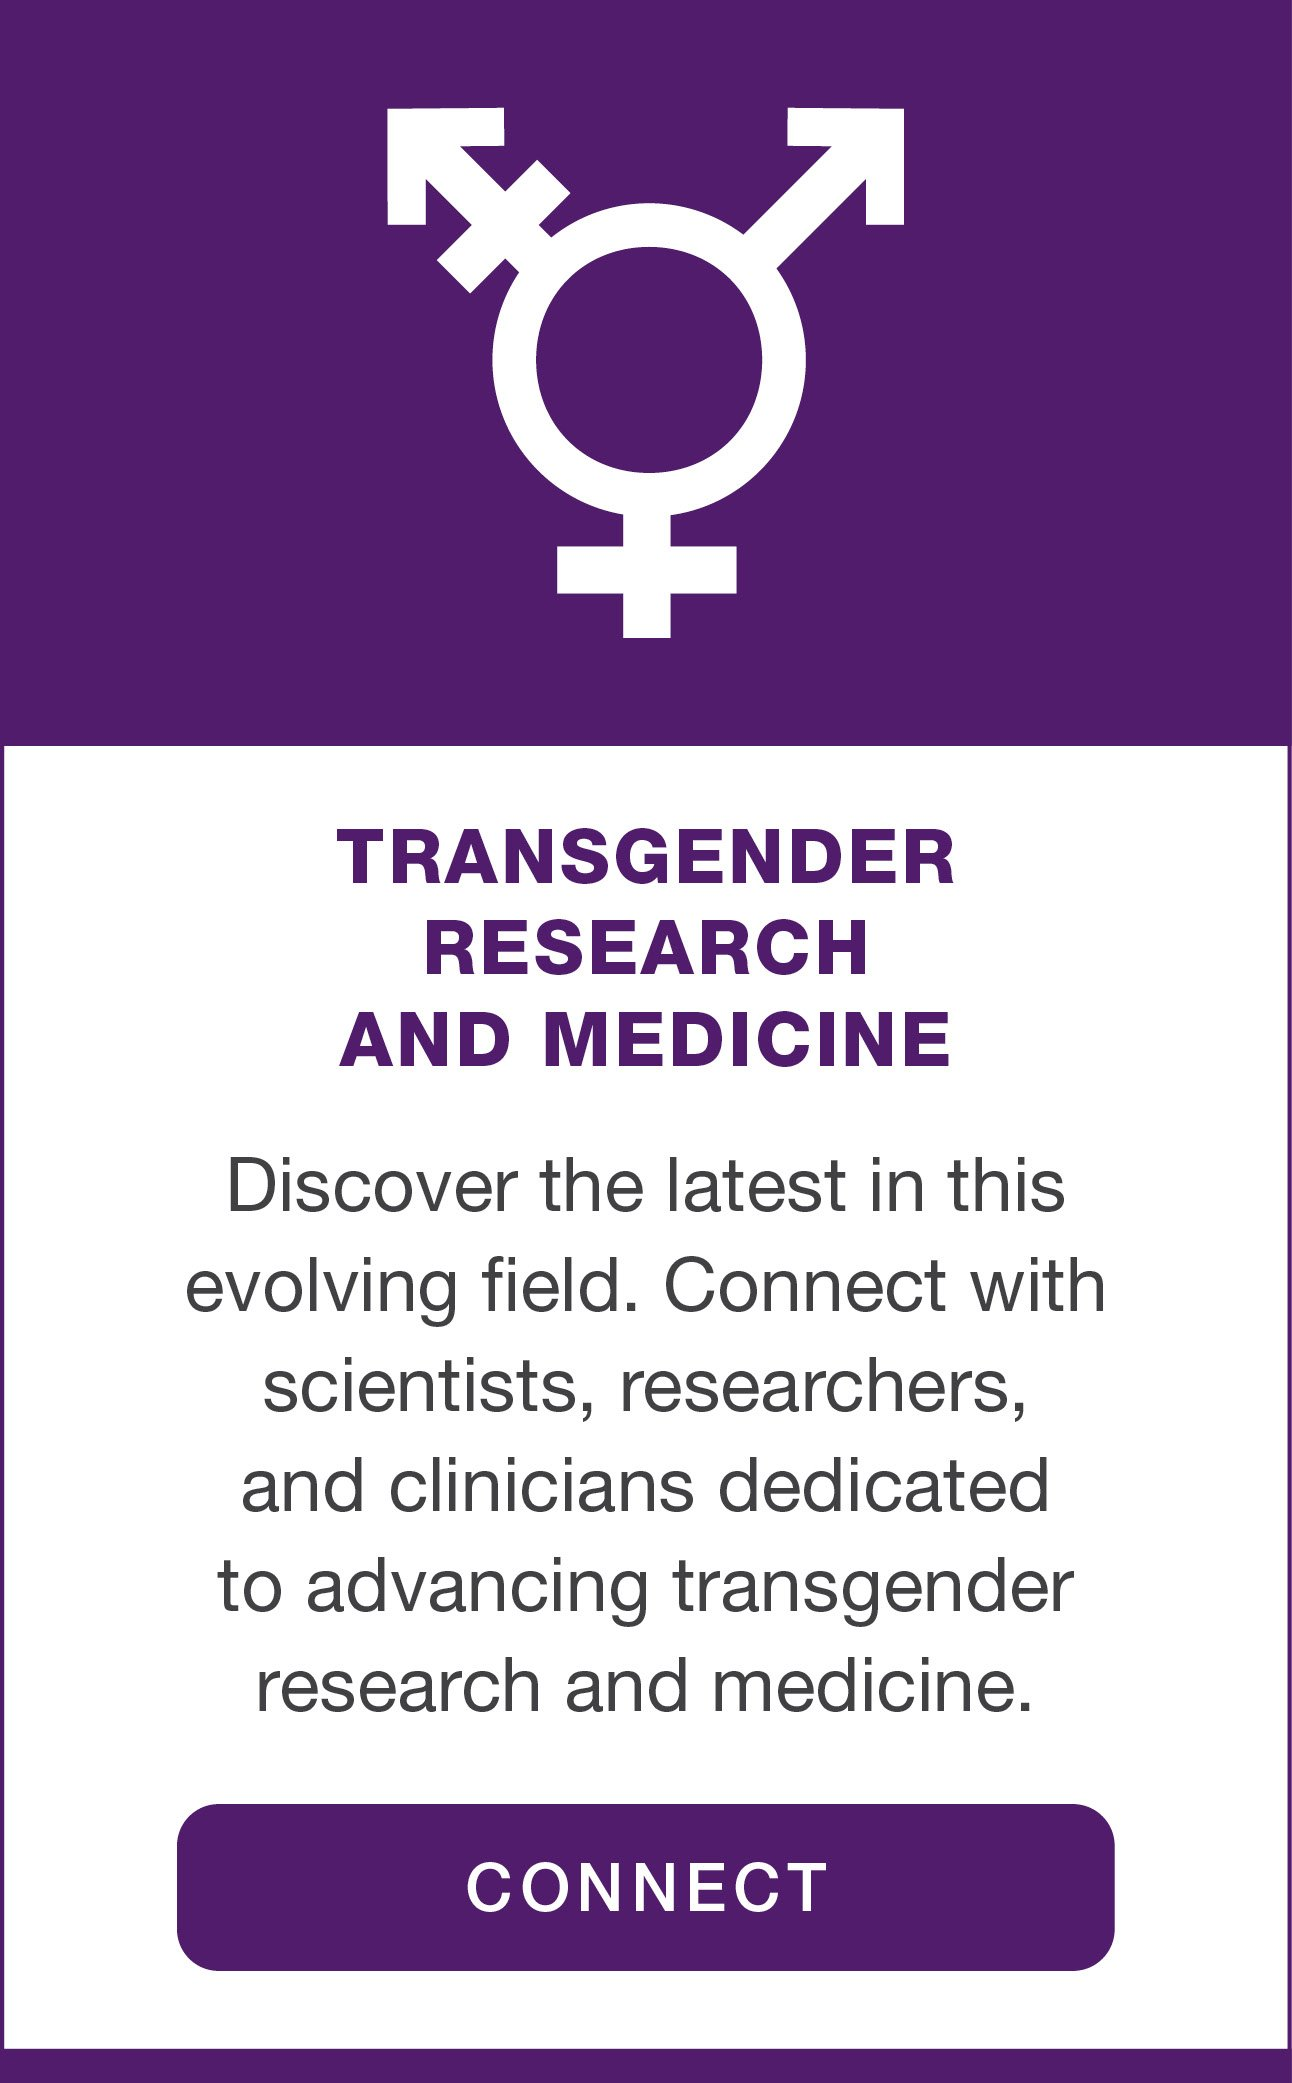 Special Interest Group: Transgender Research & Medicine